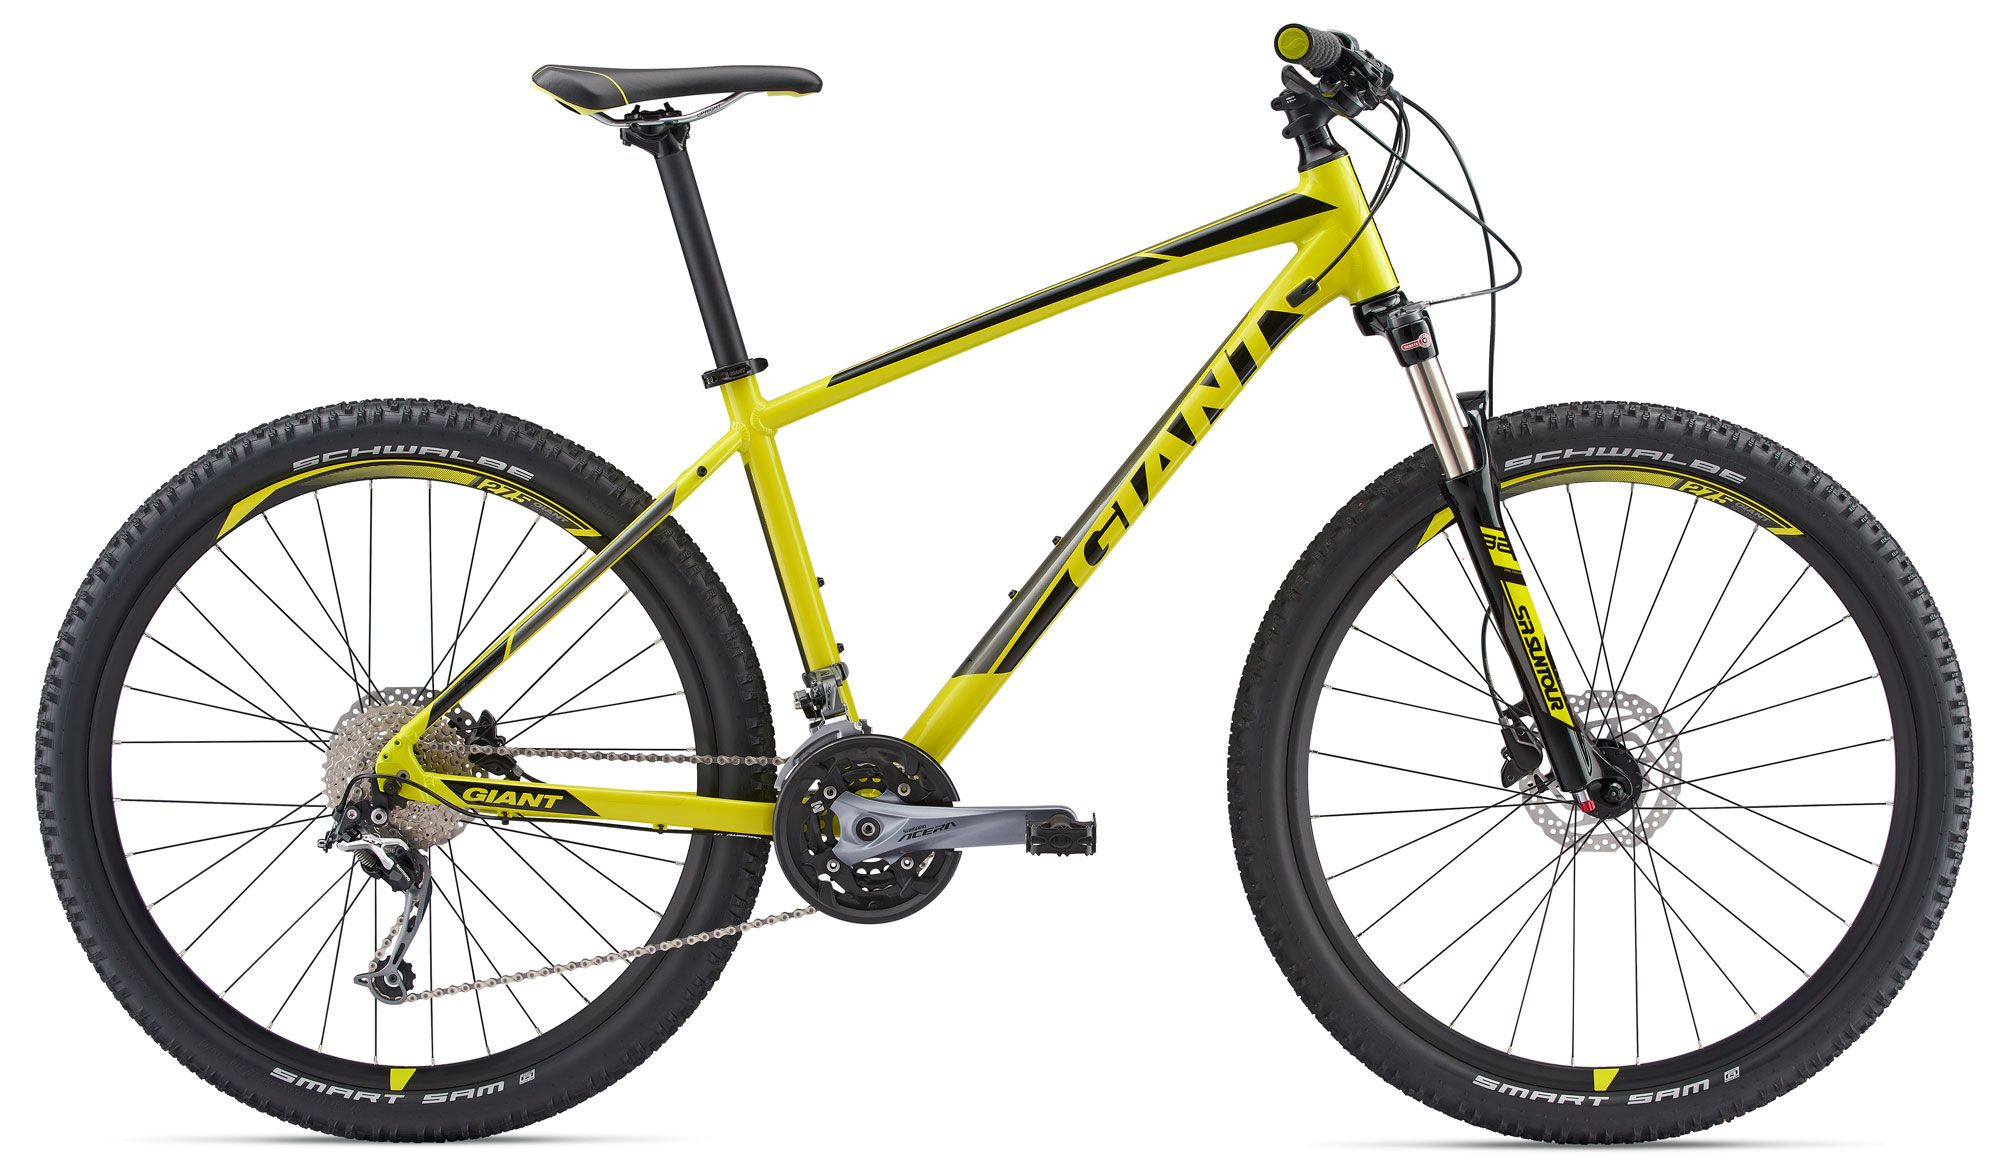 Велосипед Giant Talon 2 GE 2018 велосипед giant talon 29er 2 blk 2014